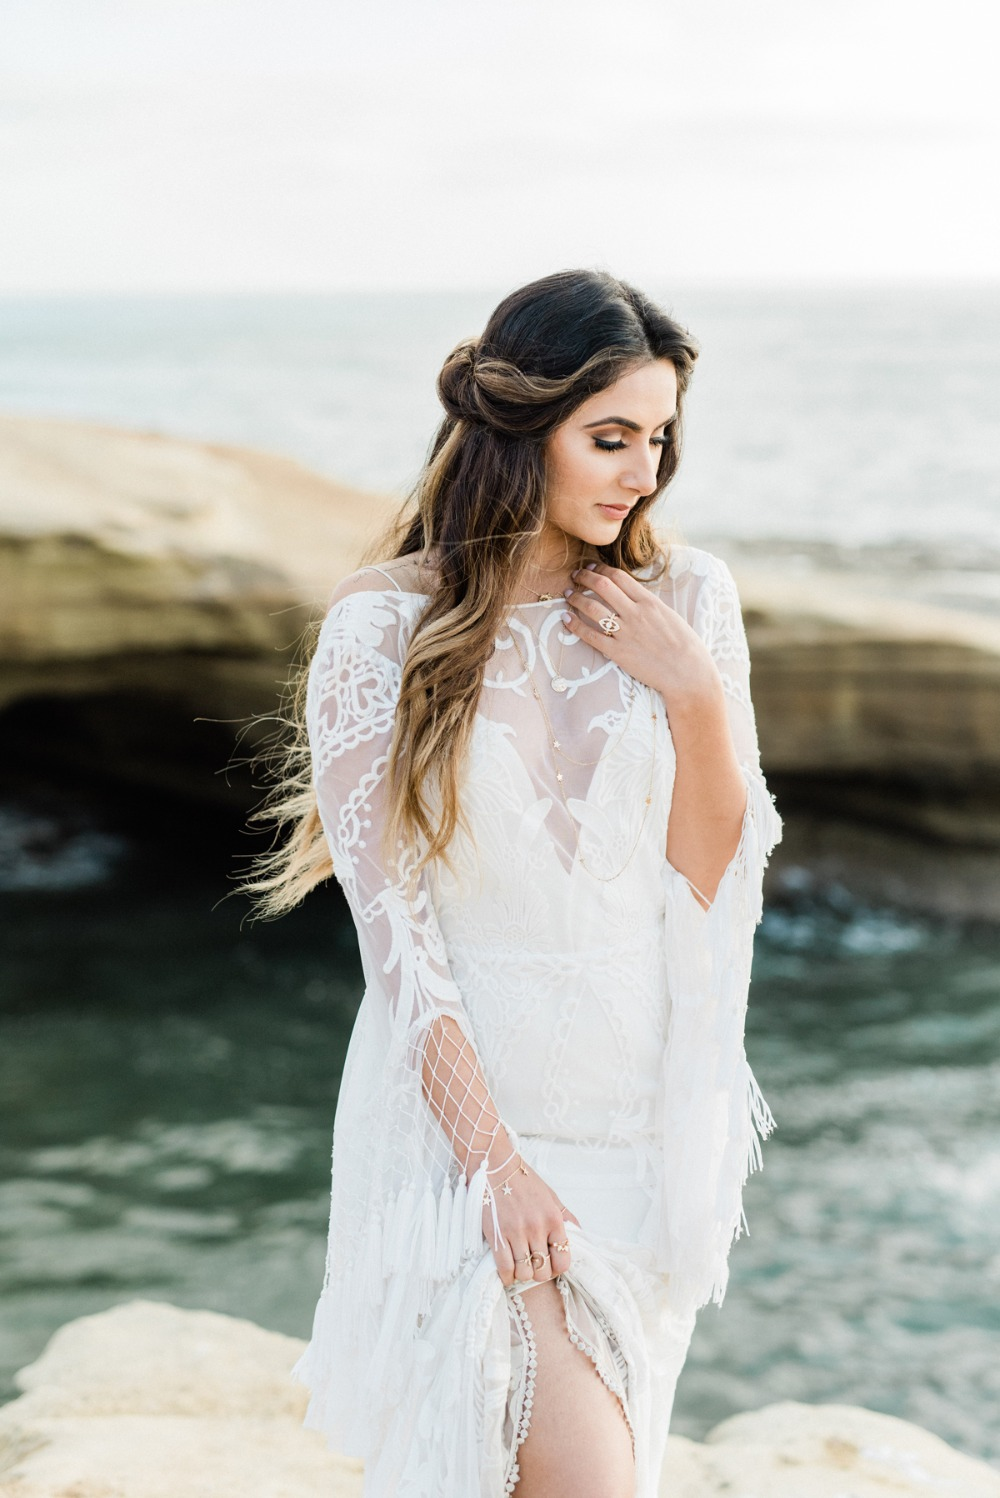 Free Spirit Coastal Anniversary Shoot Ideas